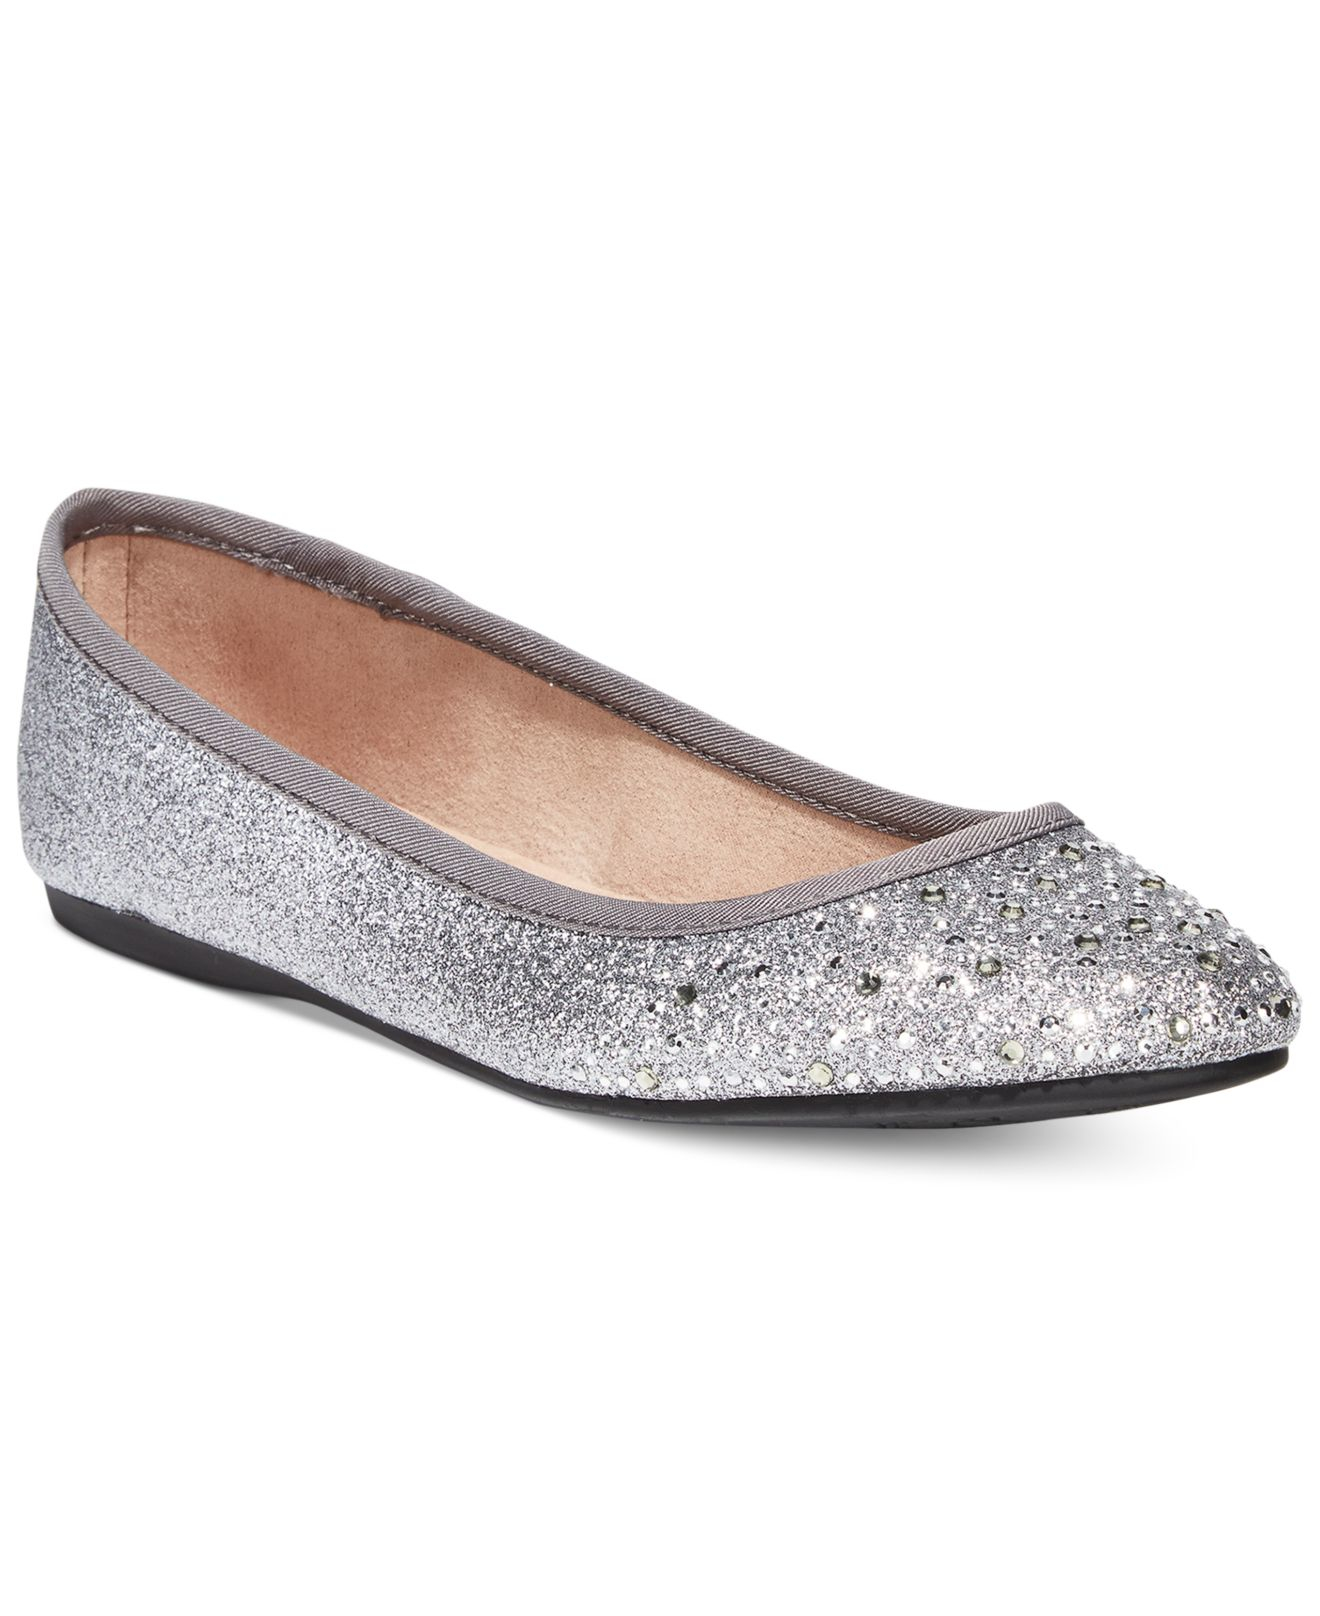 Shop a great selection of Clearance Women's Flats at Nordstrom Rack. Find designer Clearance Women's Flats up to 70% off and get free shipping on orders over $